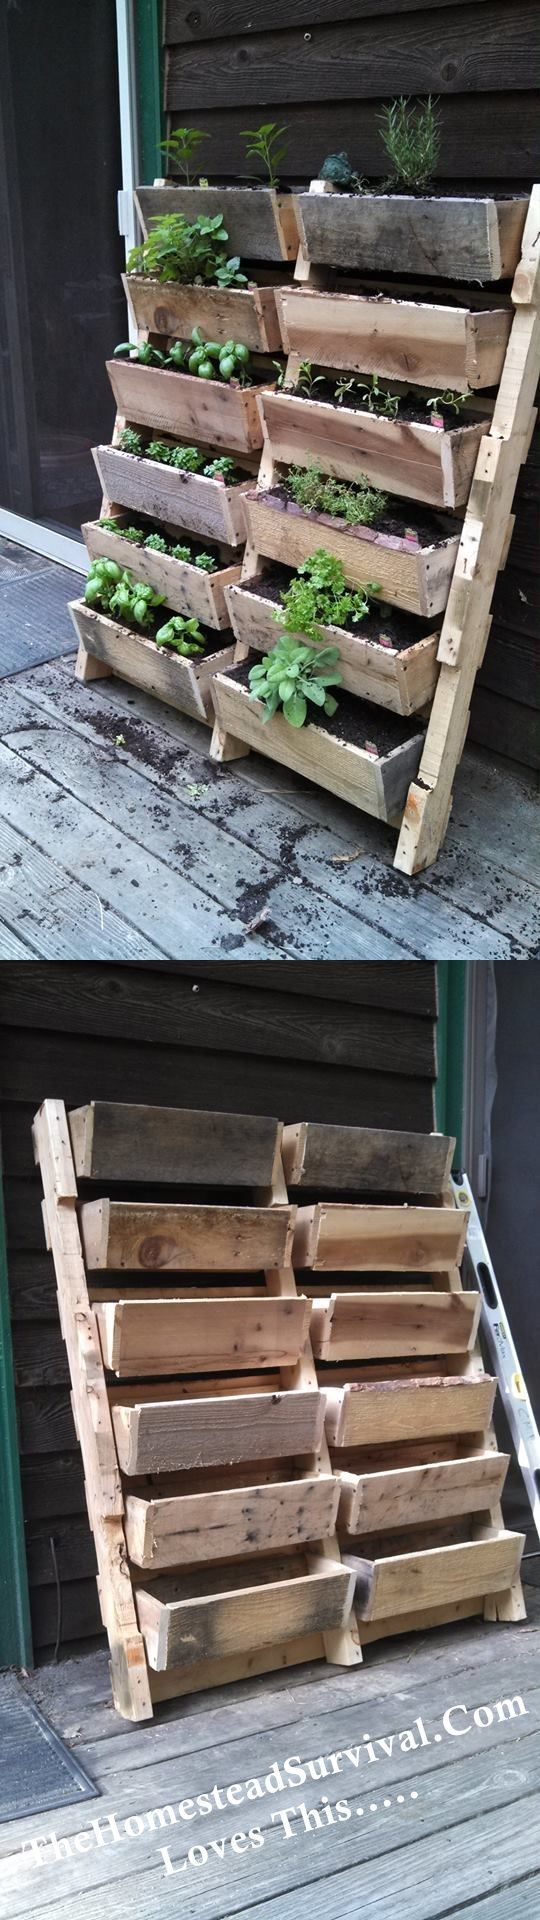 Vertical Gardening // terrific use of space for small yards or porches via Homestead Survival #springfever #apartmentgardening